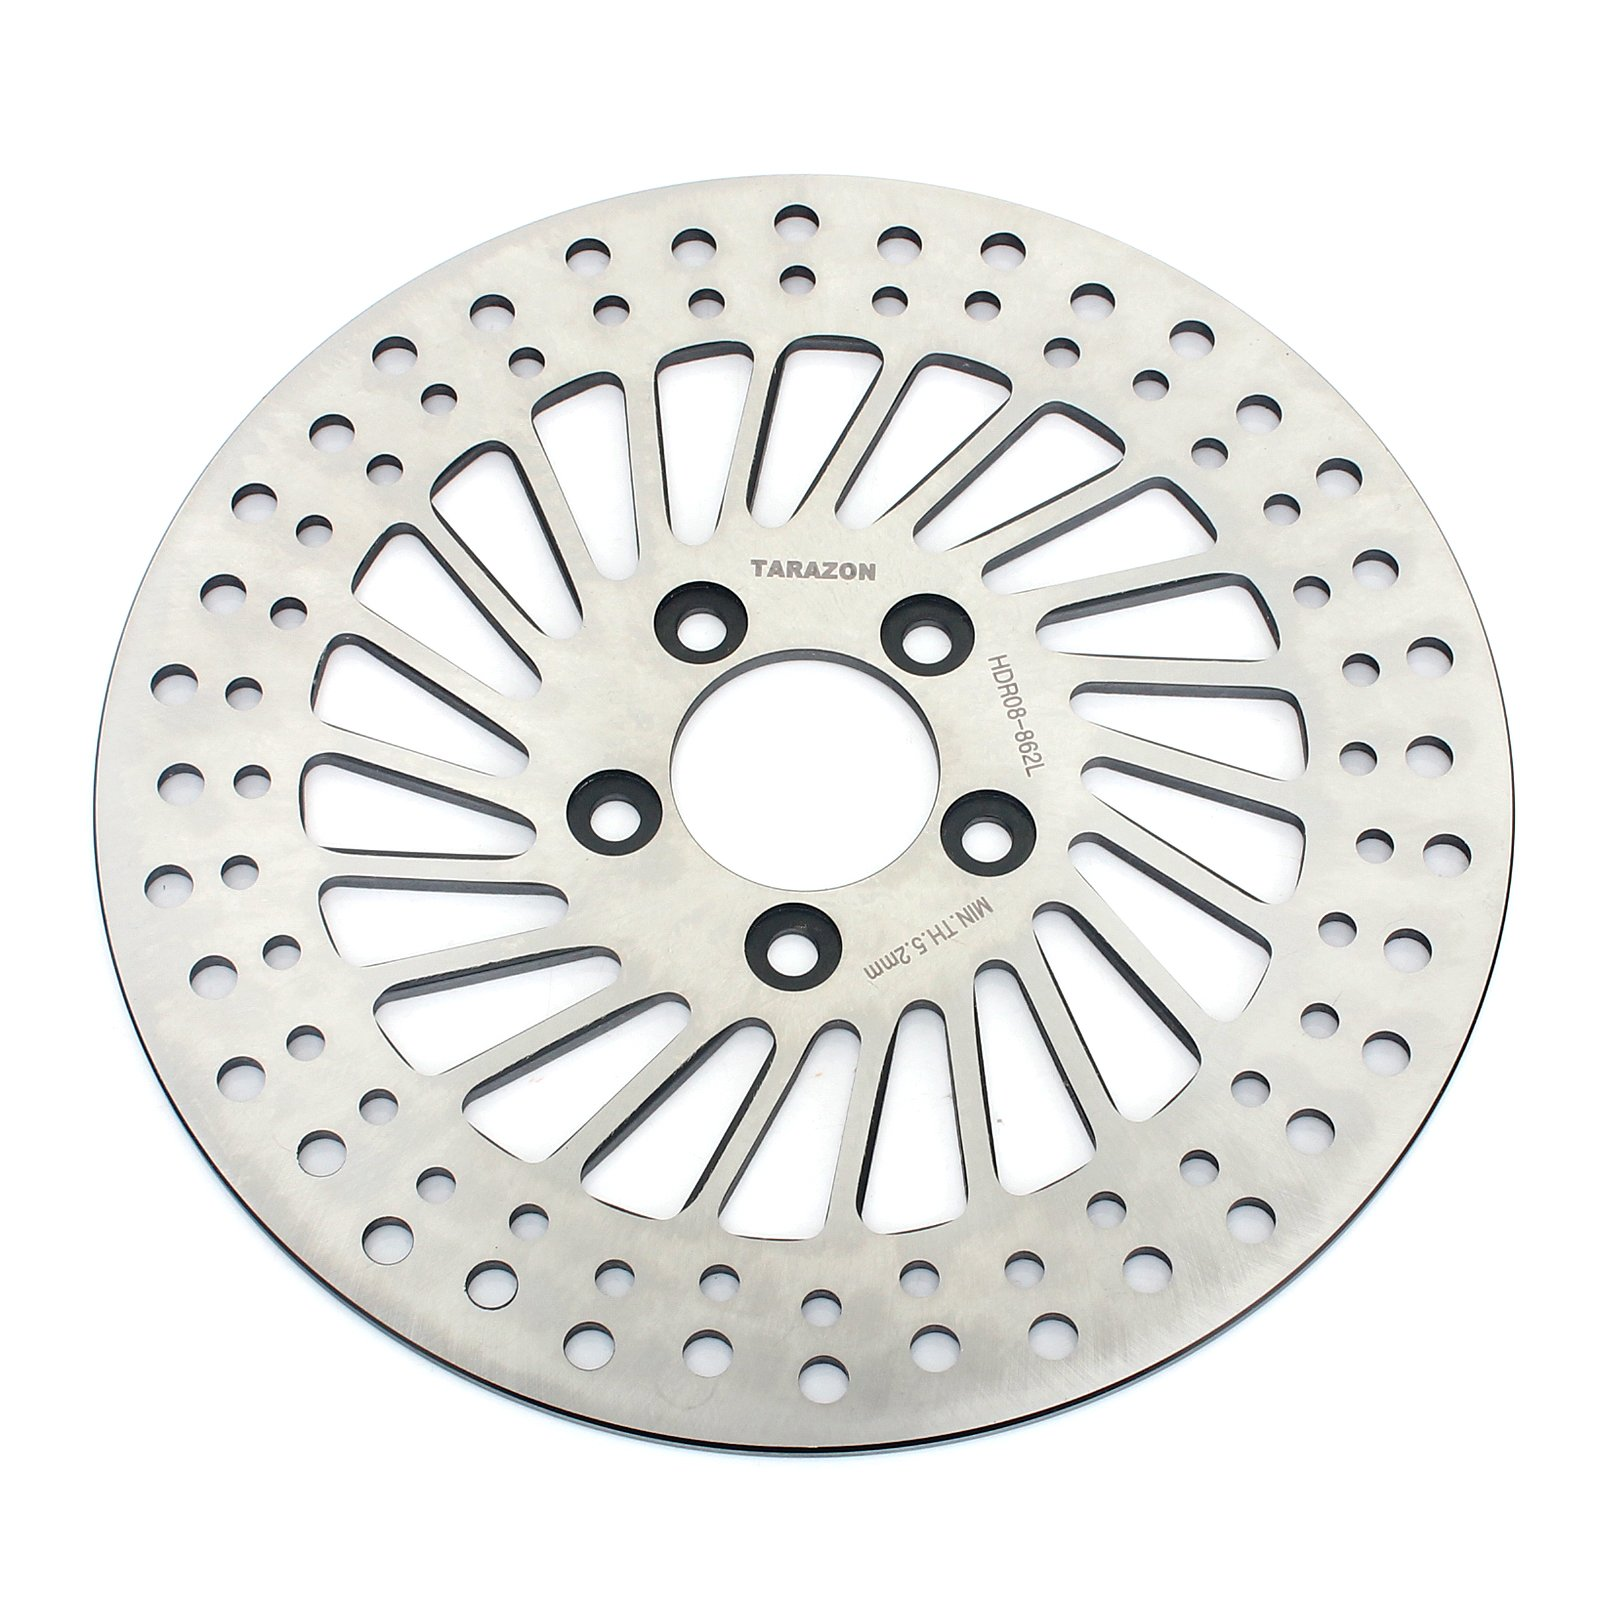 TARAZON 11.8'' Rear Brake Disc Rotor For Harley Touring 1690 1584 Electra Glide Road King Road Glide Street Glide 2008-2015 by TARAZON